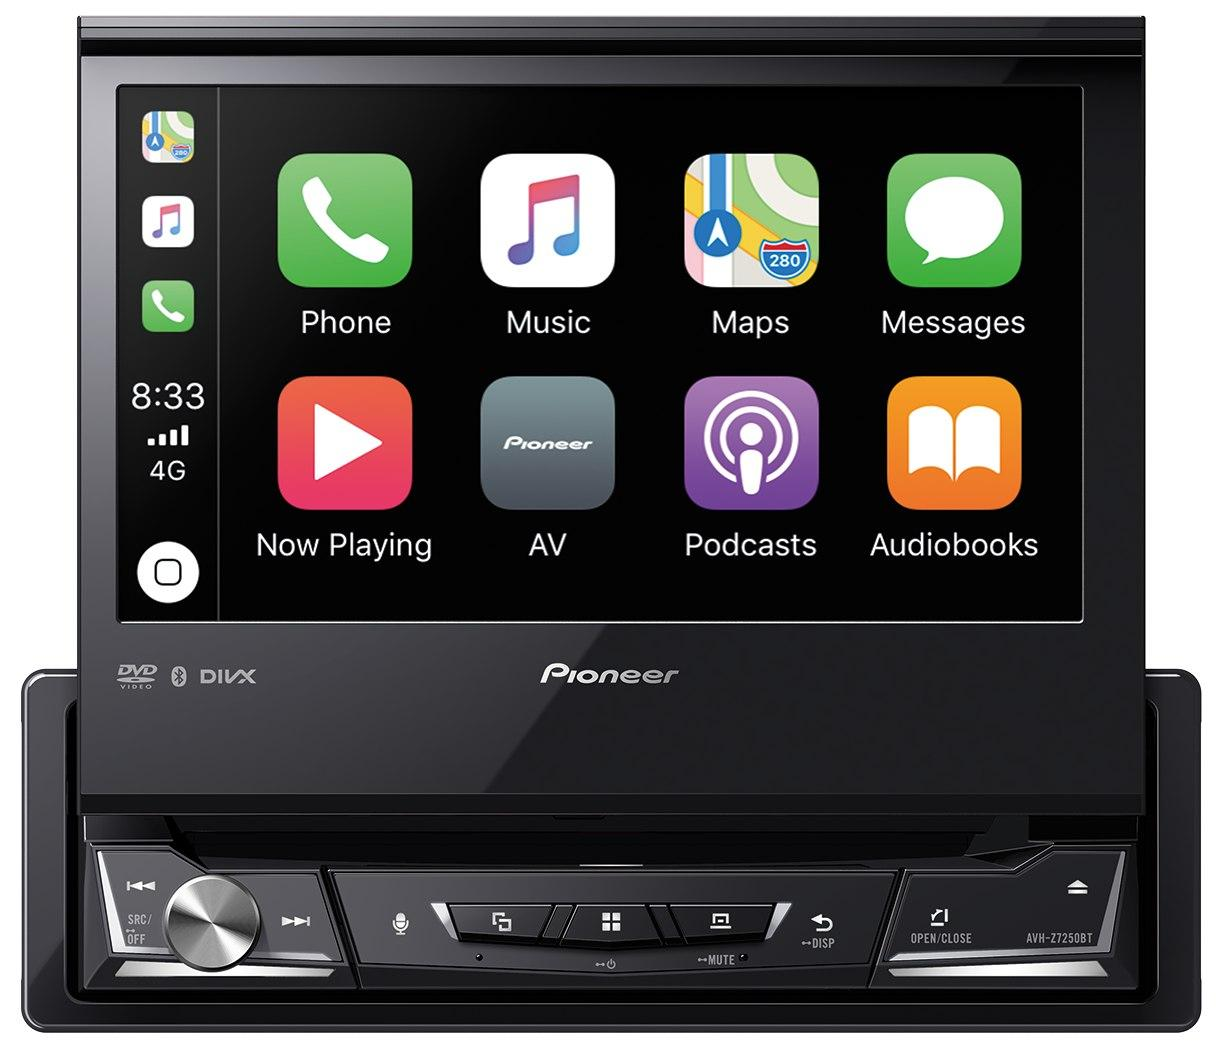 Pioneer AVH-Z7250BT pioneer Car radio system with Android Auto